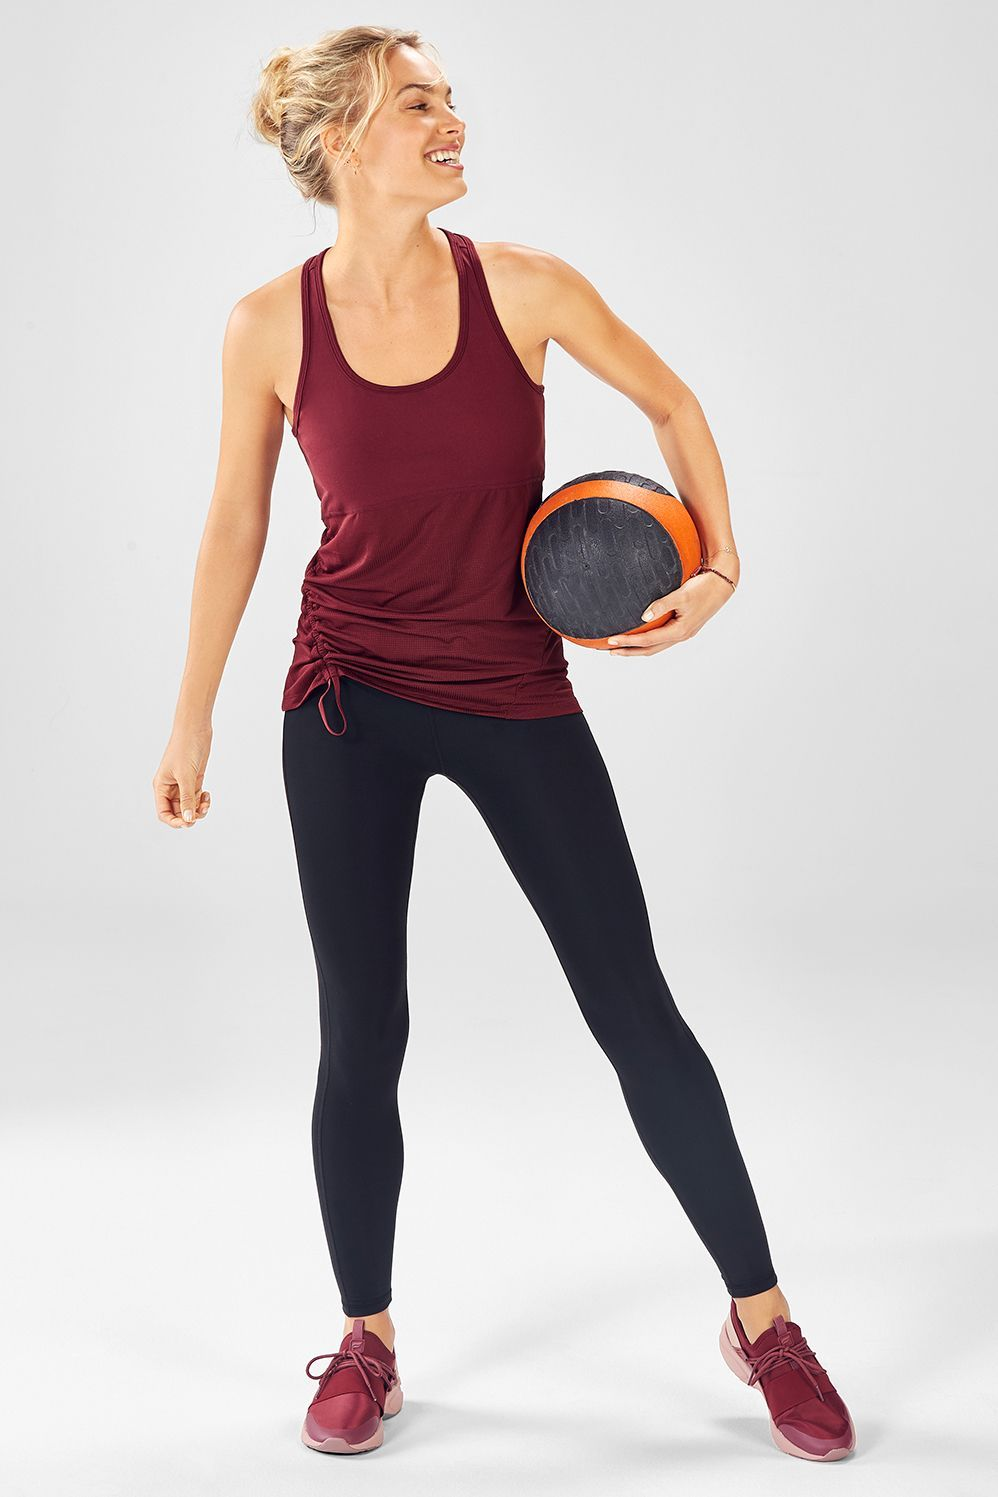 Arroe In 2021 Womens Workout Outfits Workout Tops For Women Workout Clothes [ 1497 x 998 Pixel ]